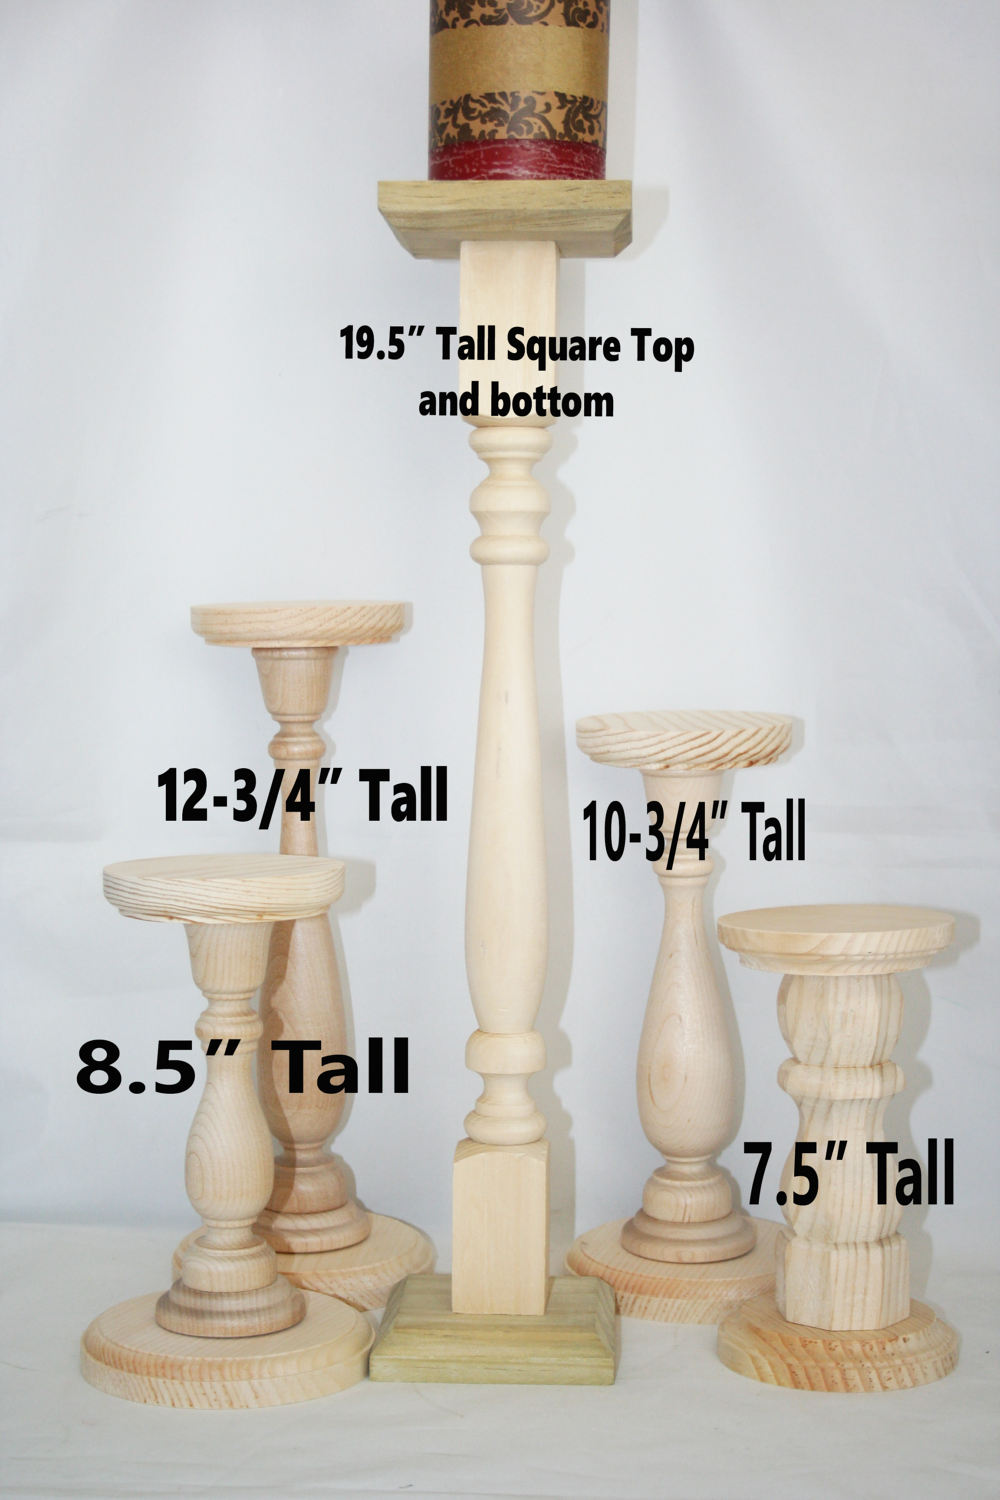 extra tall unfinished wood pillar candlestick holders diy wedding accents table accent pottery barn round chair grey nest tables area rugs sofa with chairs garden dining knobs and